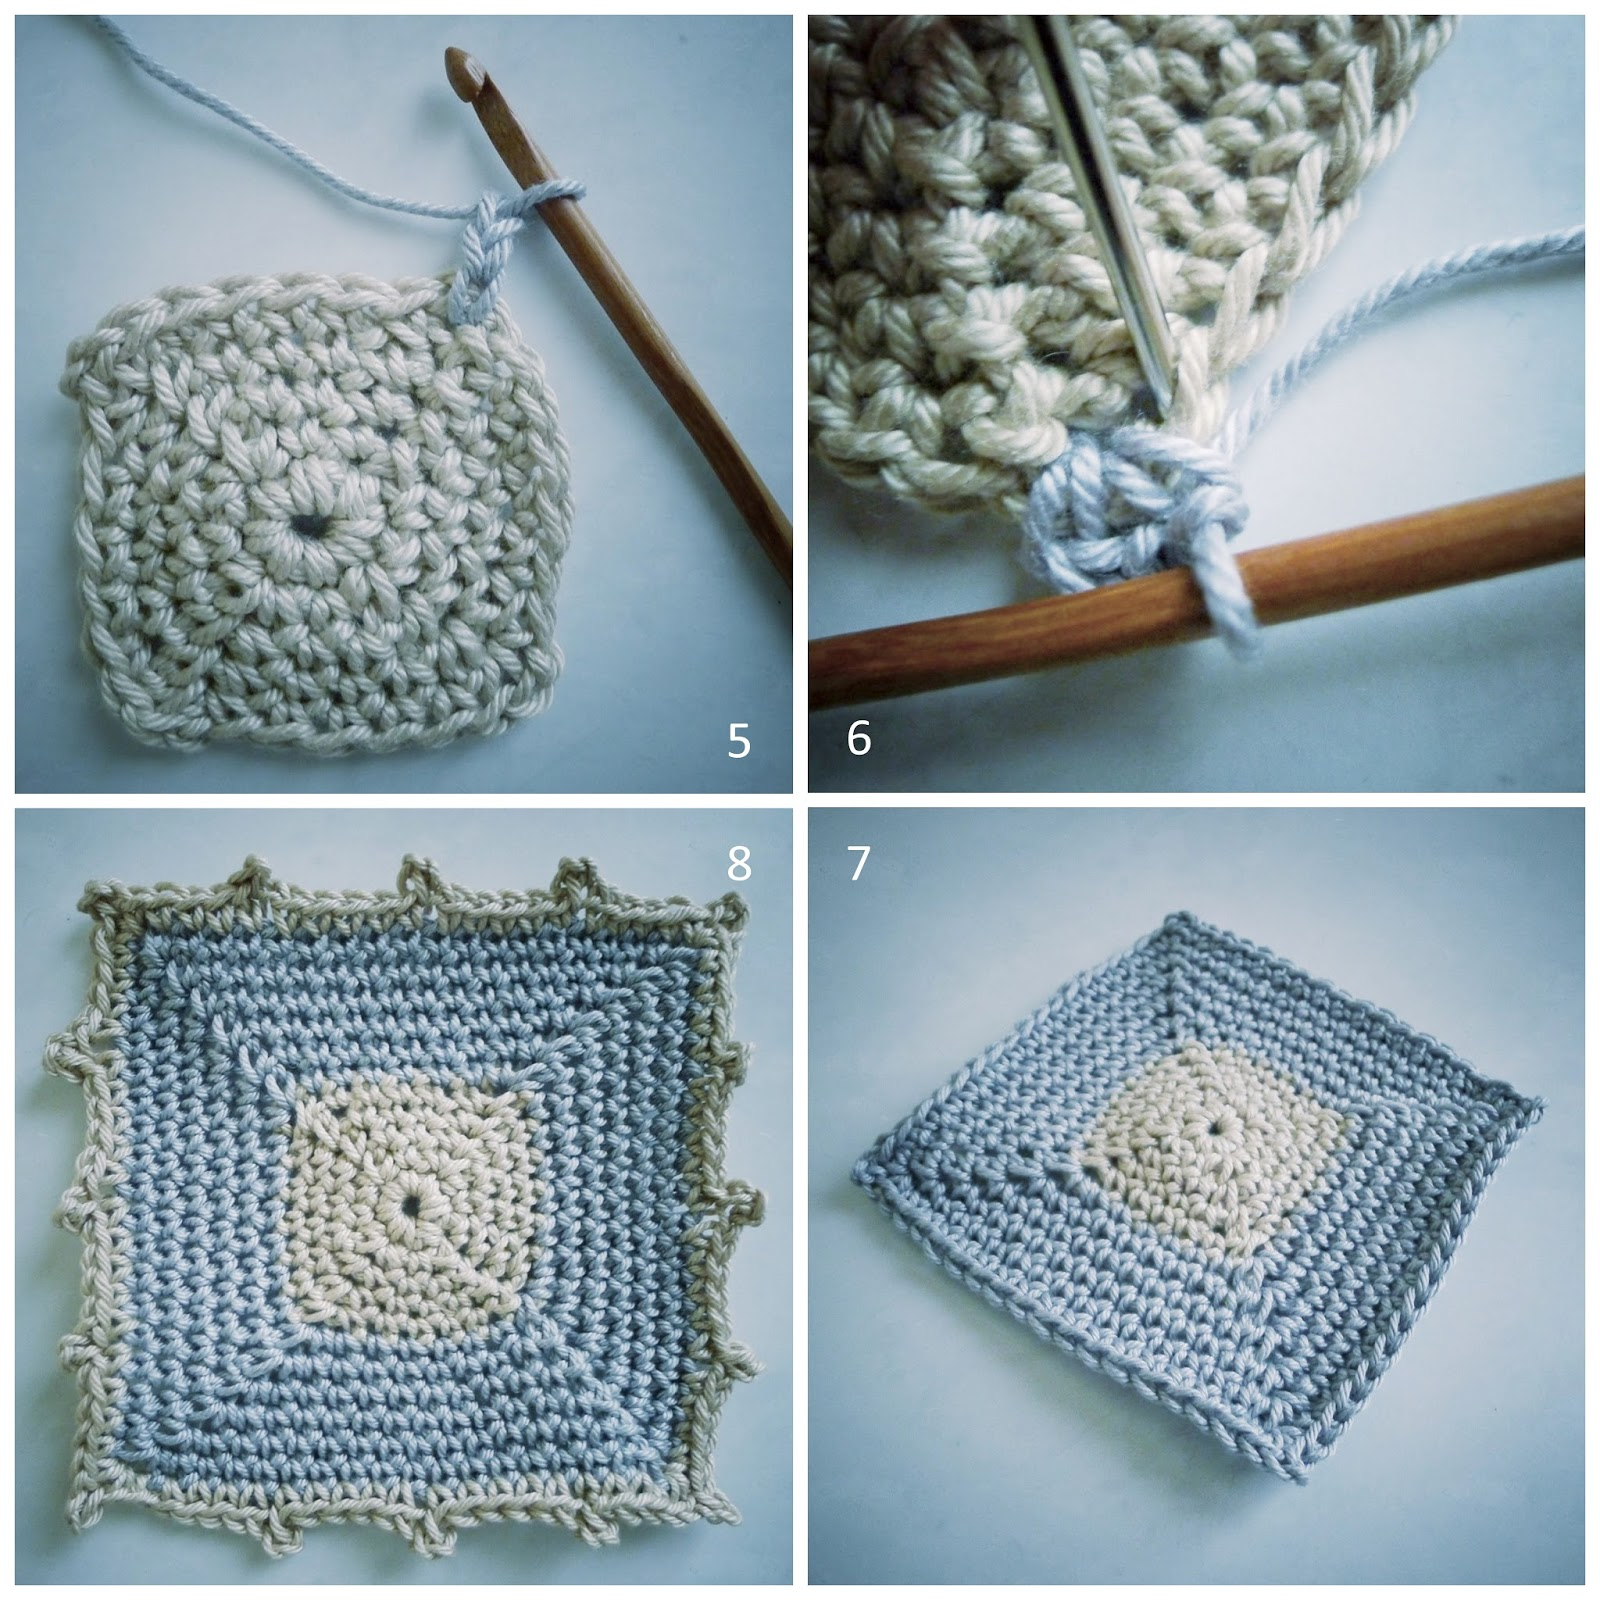 pigtails: Single Crochet Square Pattern